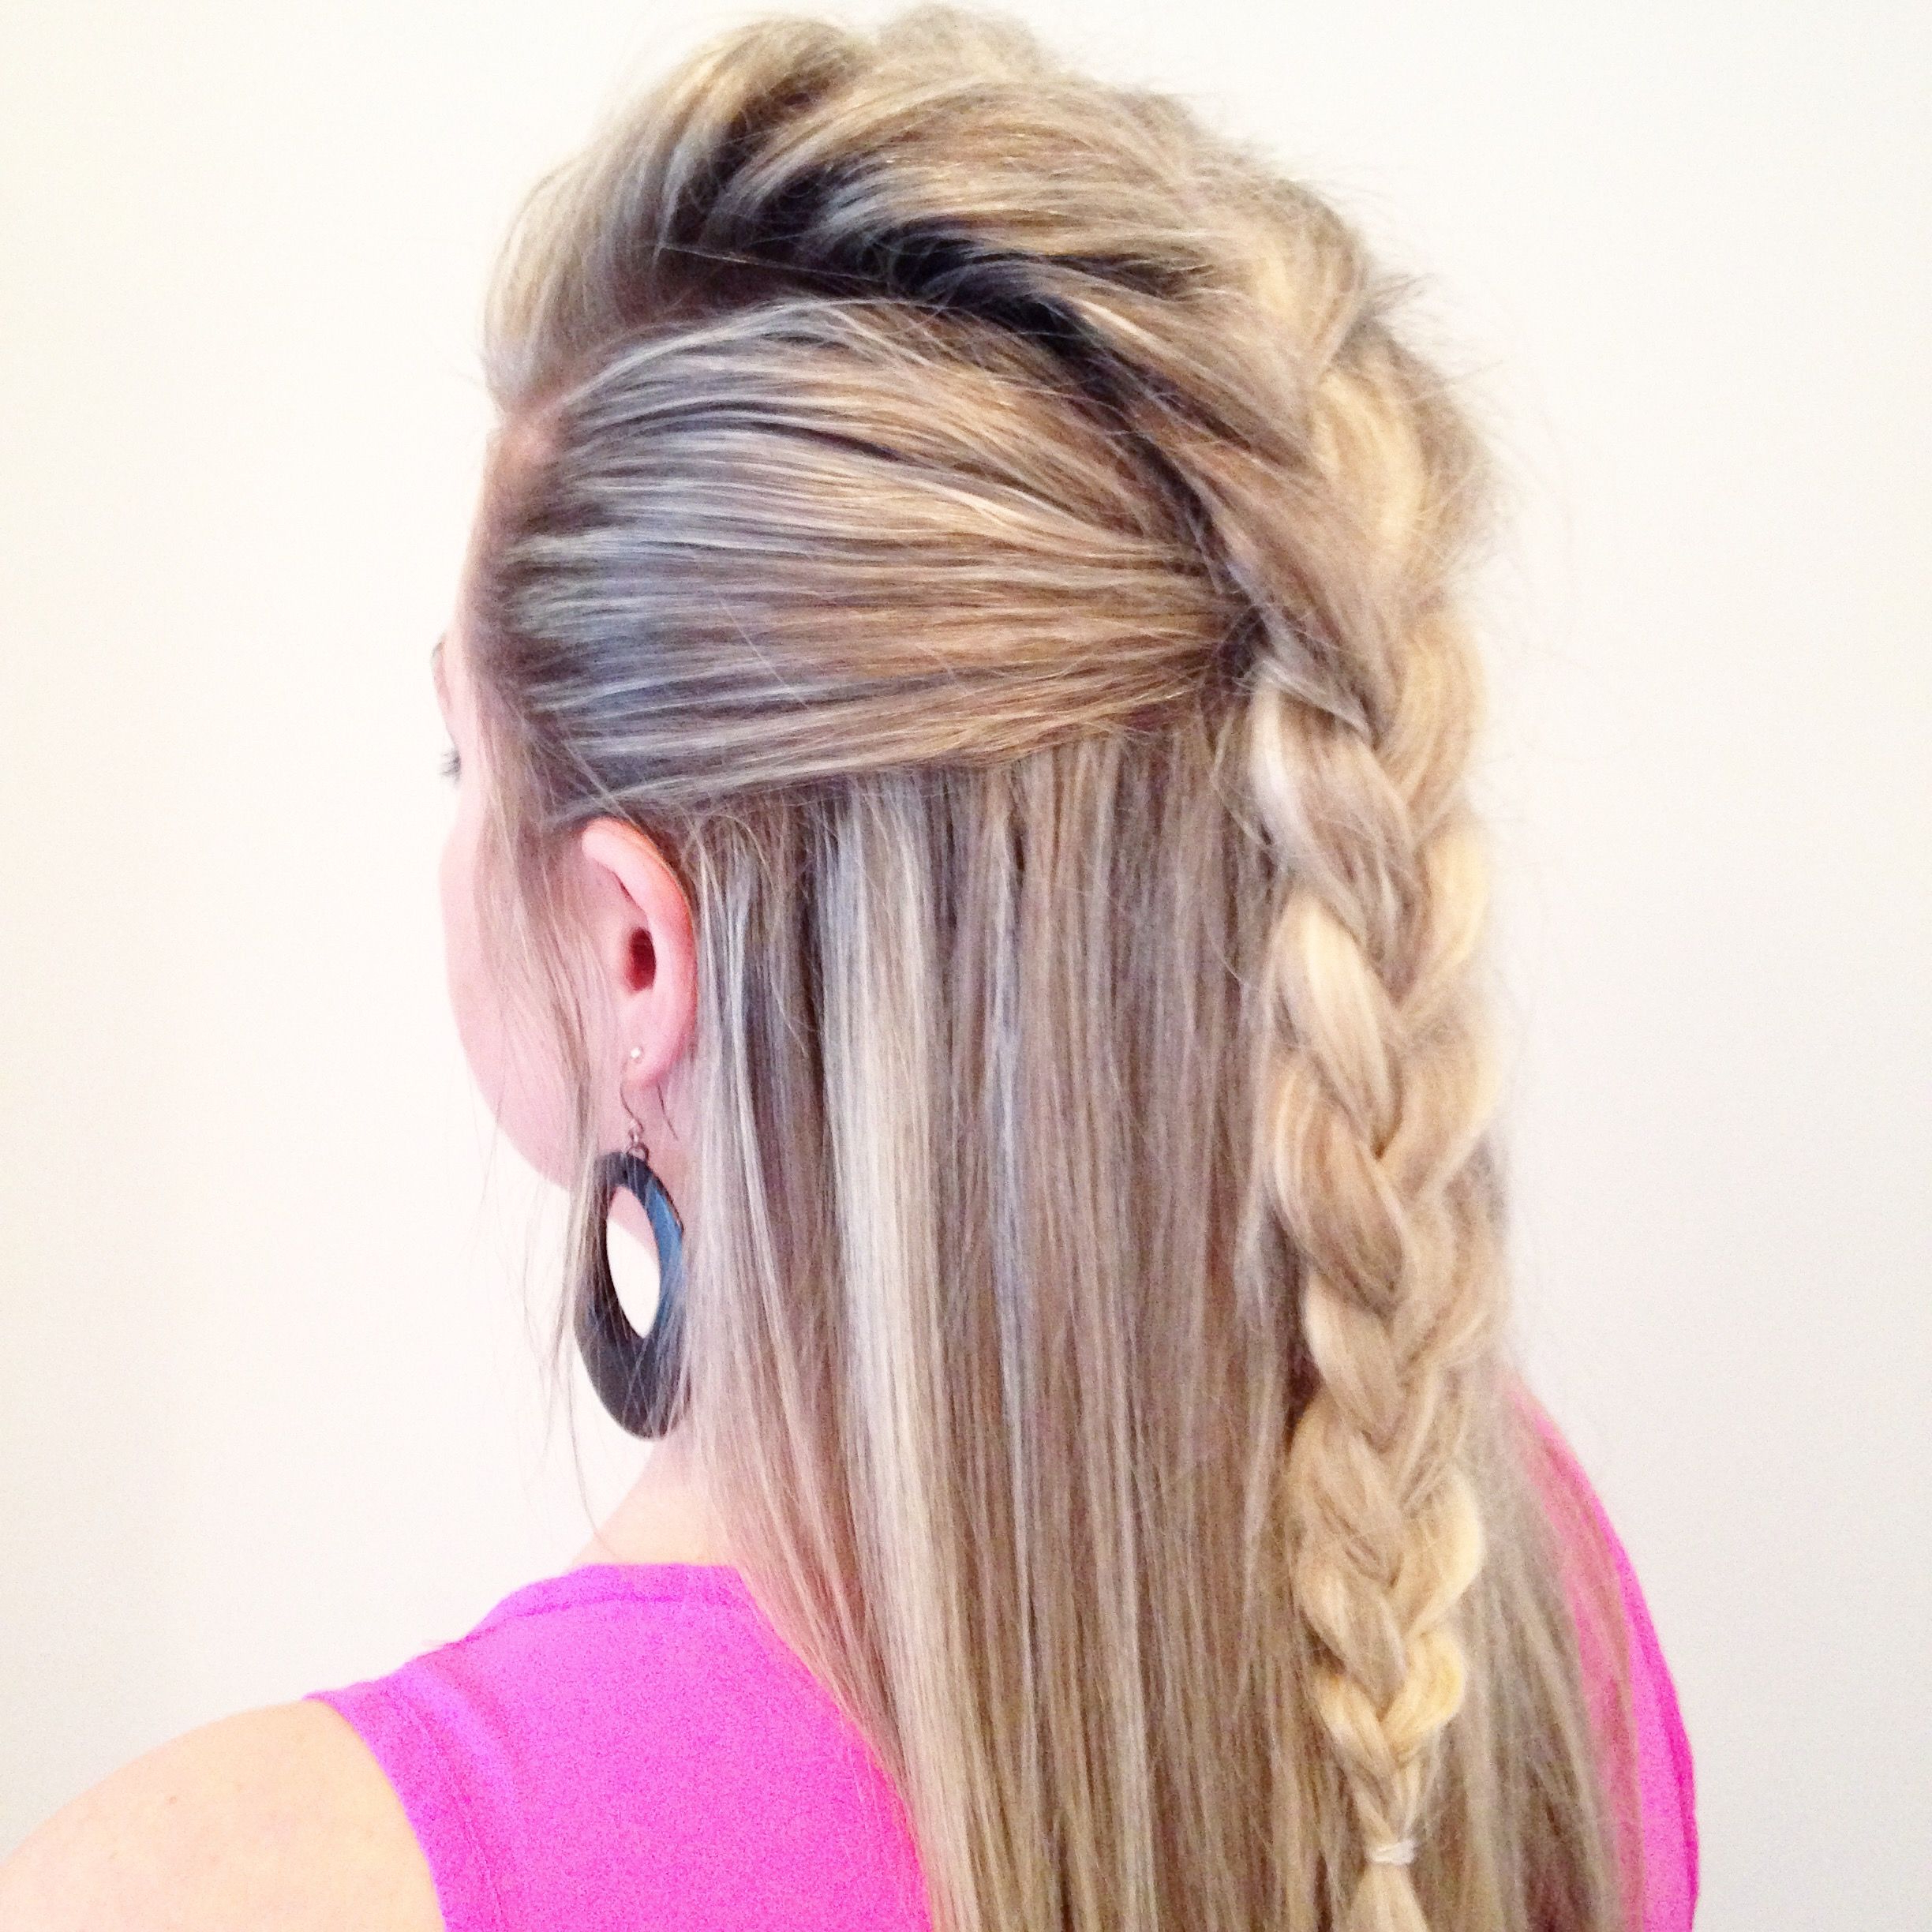 Rock Hairstyles Pertaining To Fashionable Mohawk French Braid Hairstyles (View 11 of 20)